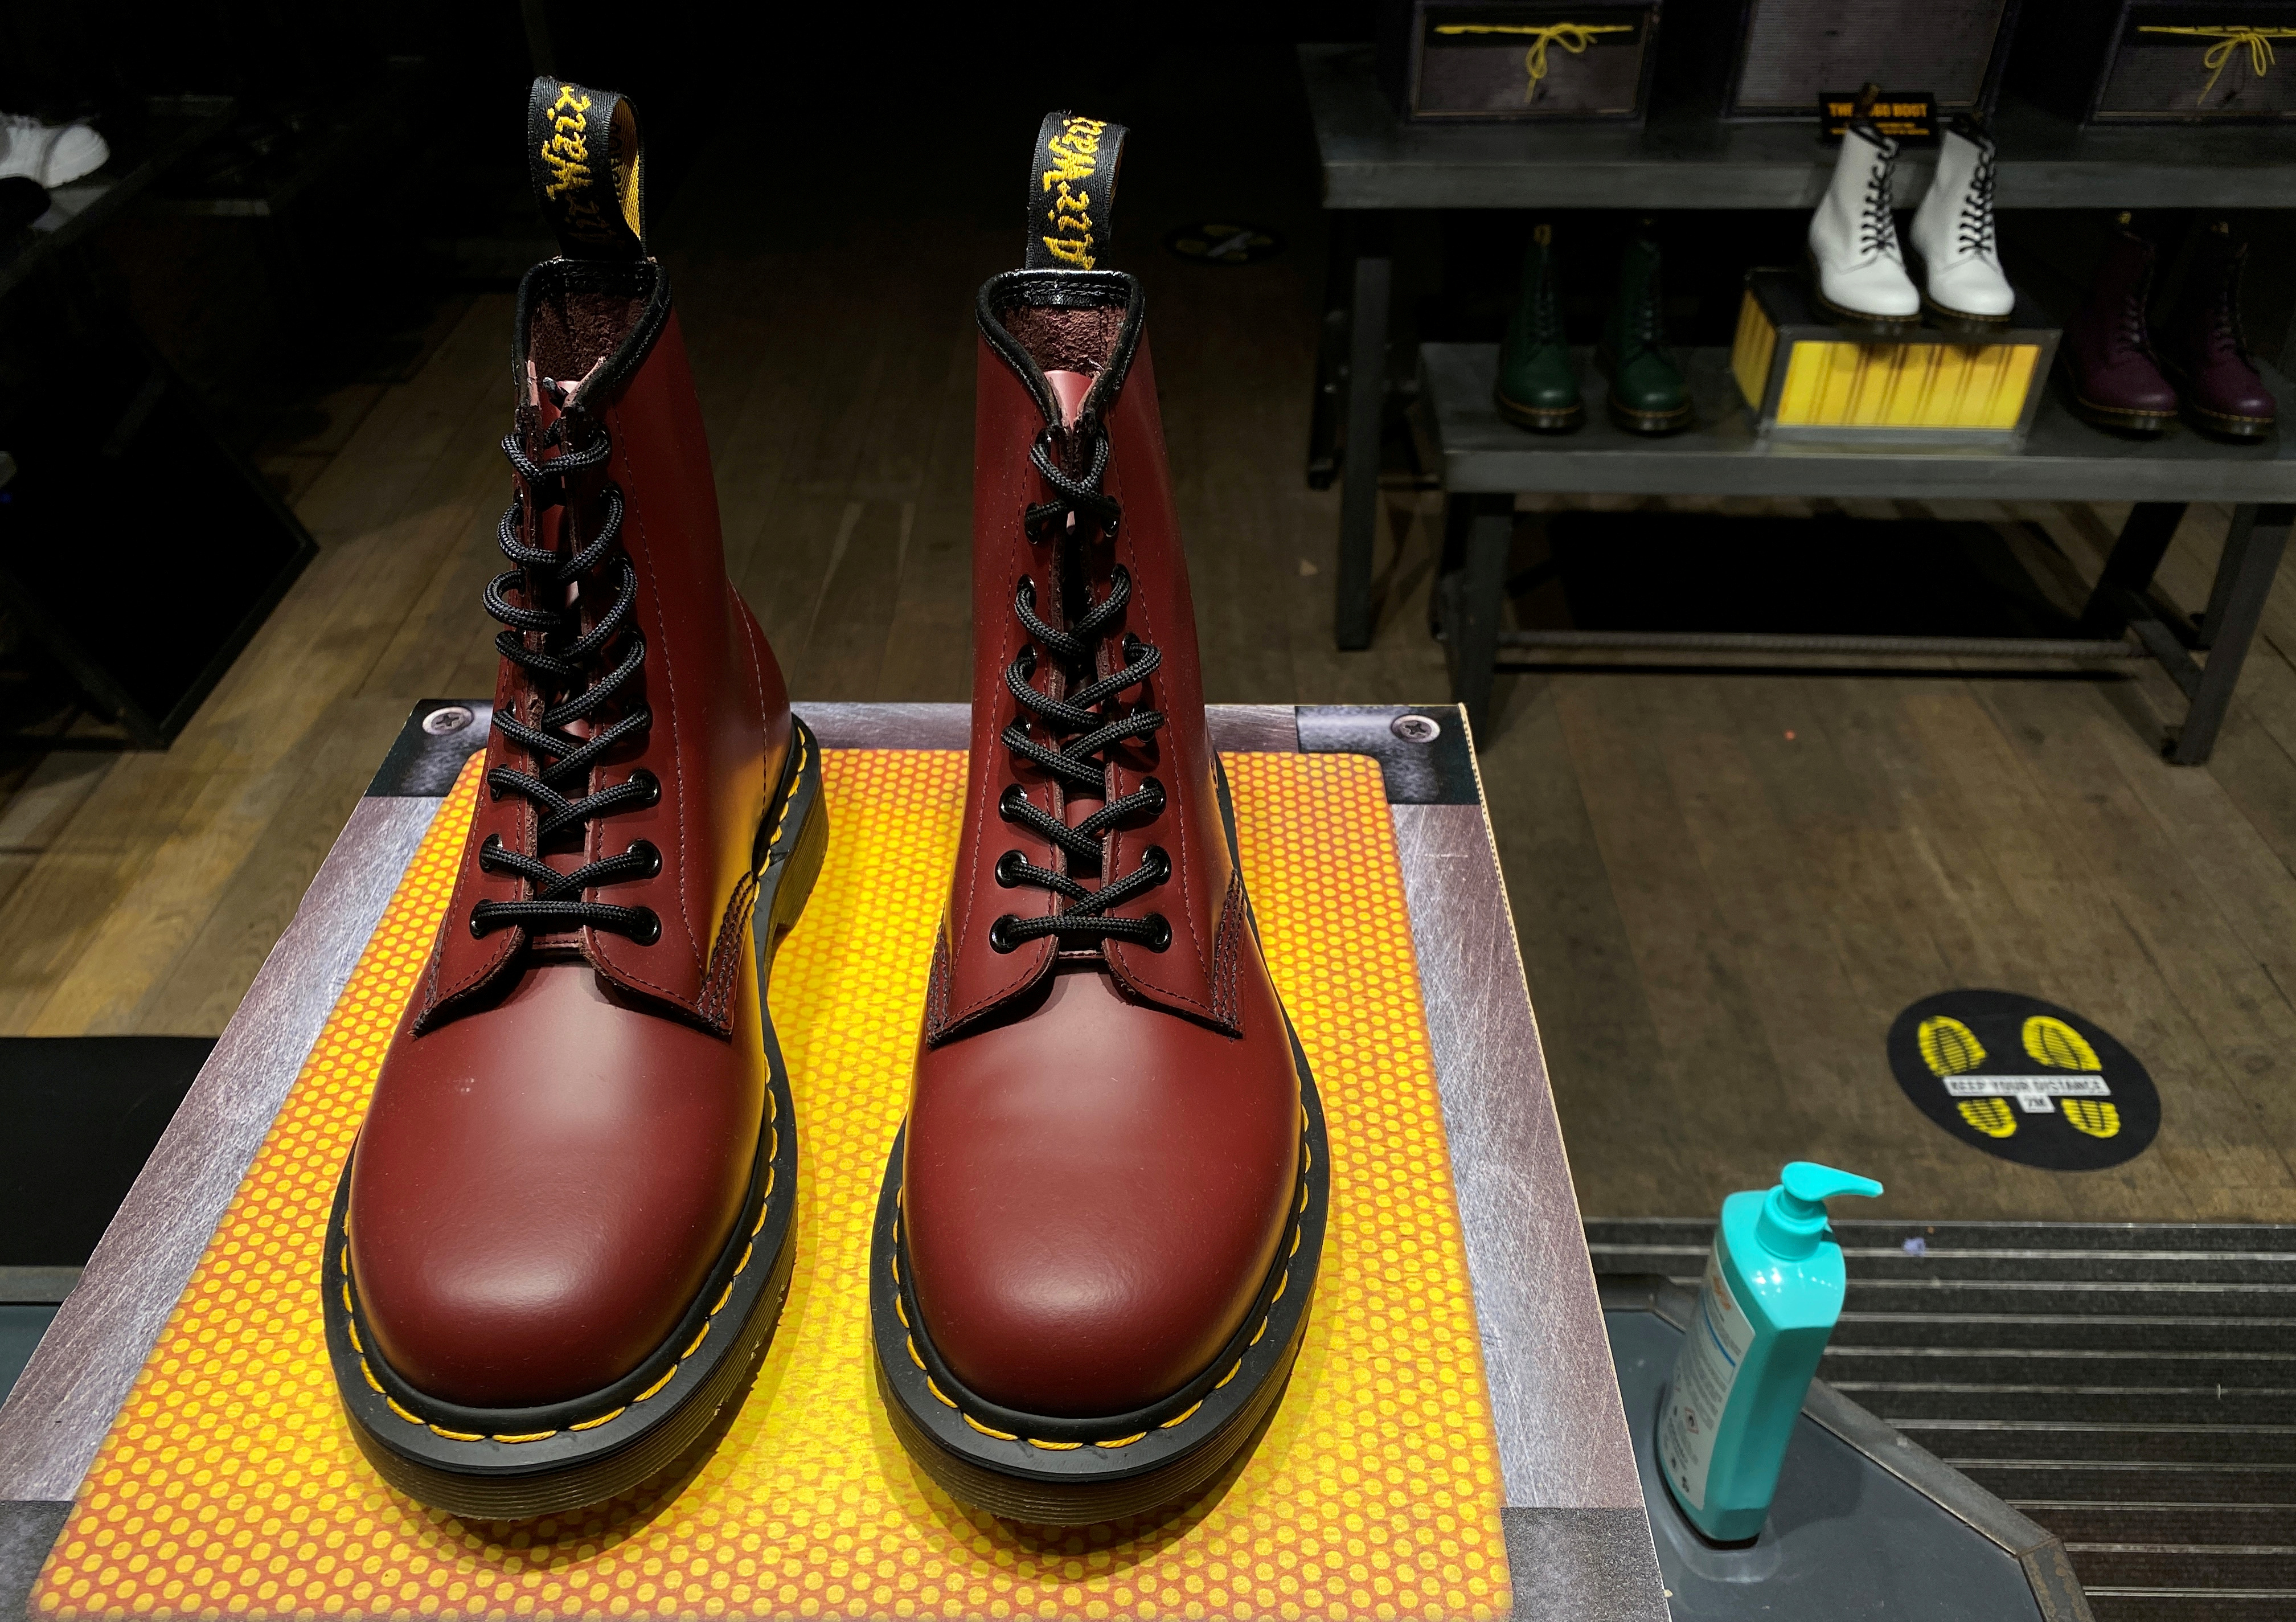 A pair of Dr. Martens boots in London, Britain, September 17, 2020. REUTERS/Simon Newman/File Photo